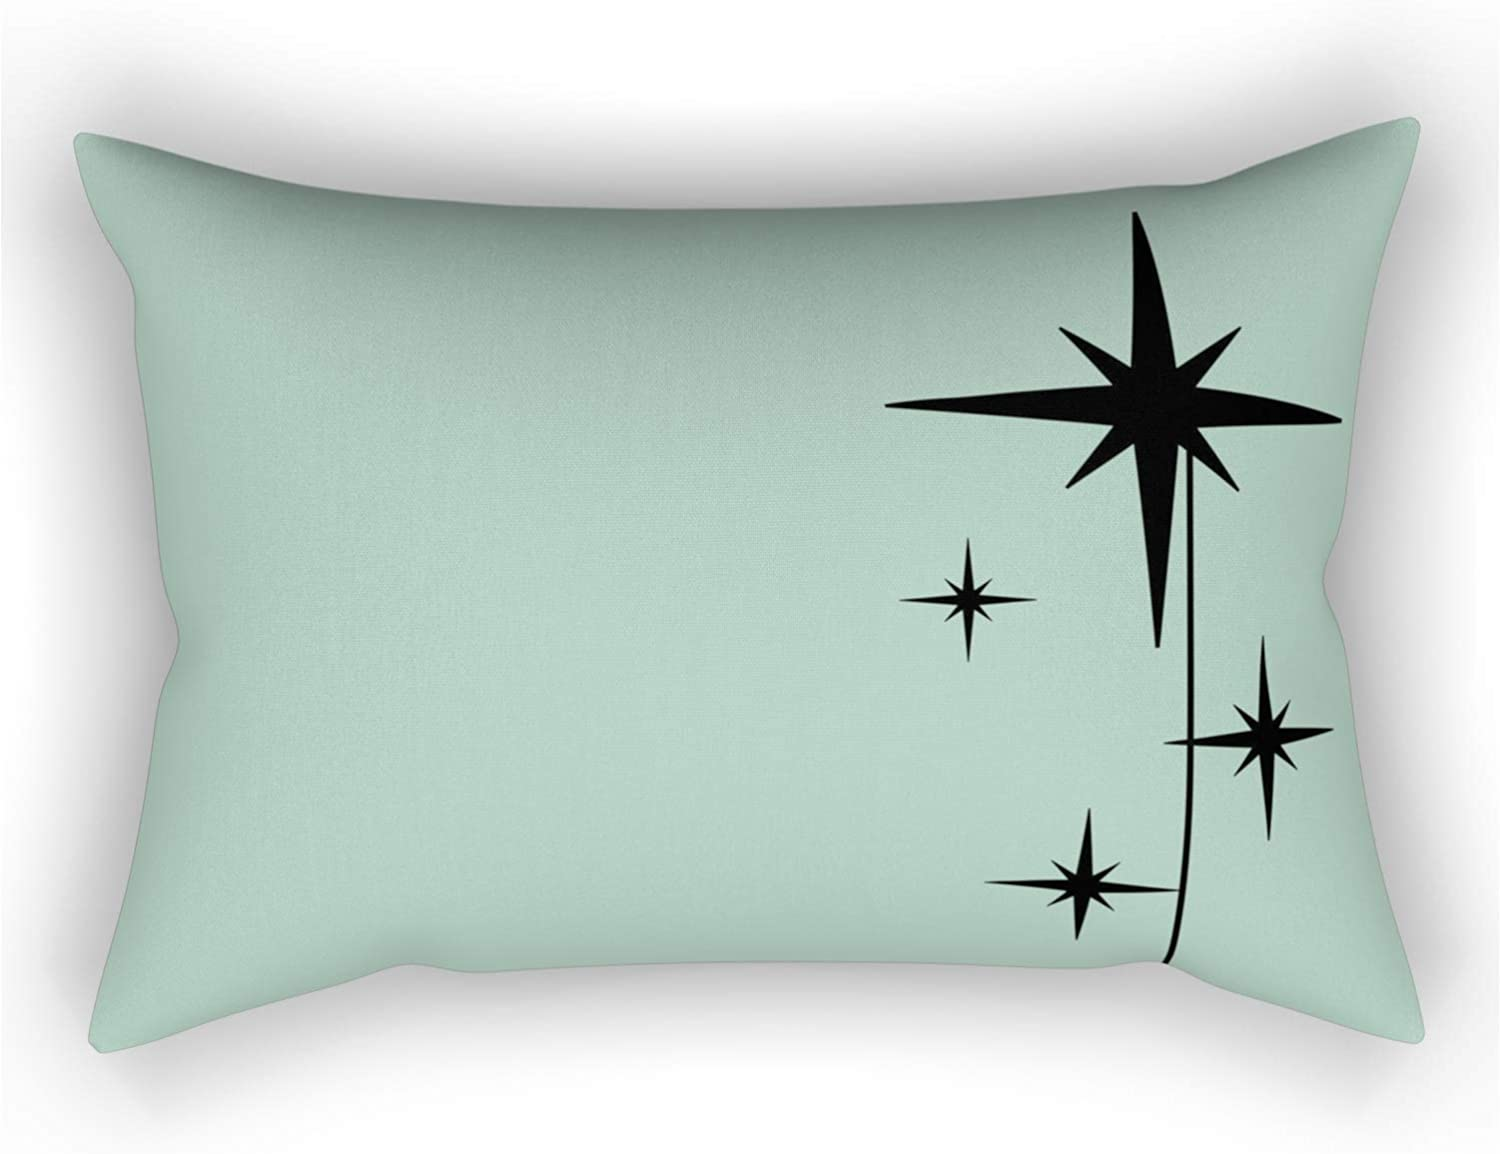 Society6 1950s Atomic Age Retro Starbursts Bla Denver Mall Mint Bargain in Green and